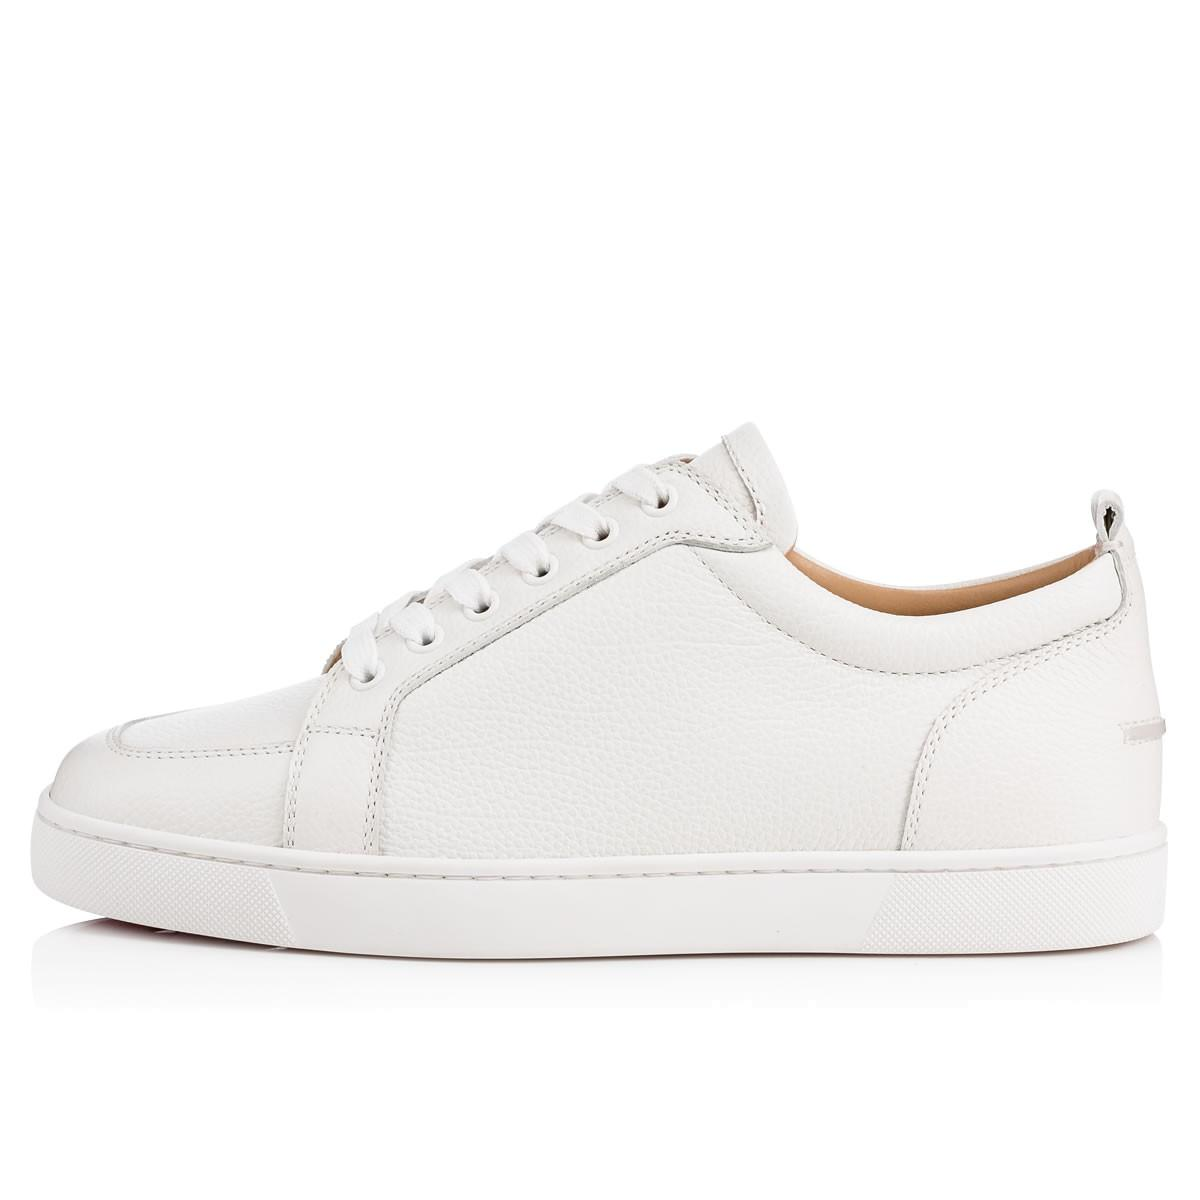 super popular 94218 84e26 Louis Junior Spike-Embellished Leather Trainers in Wh01 White